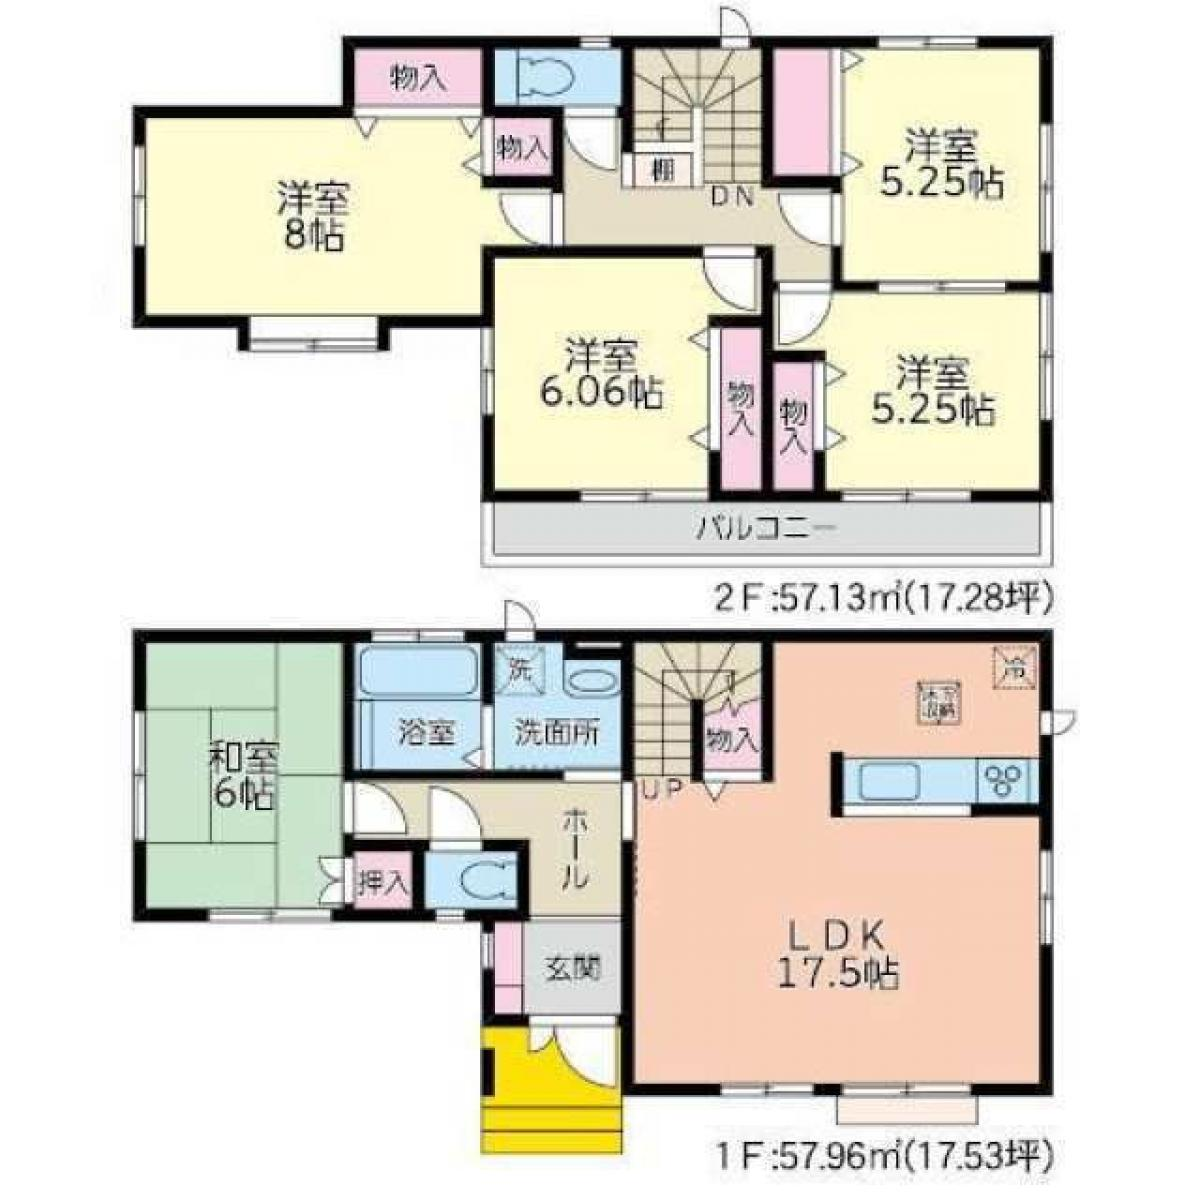 Property listed For Sale in Matsudo Shi, Japan